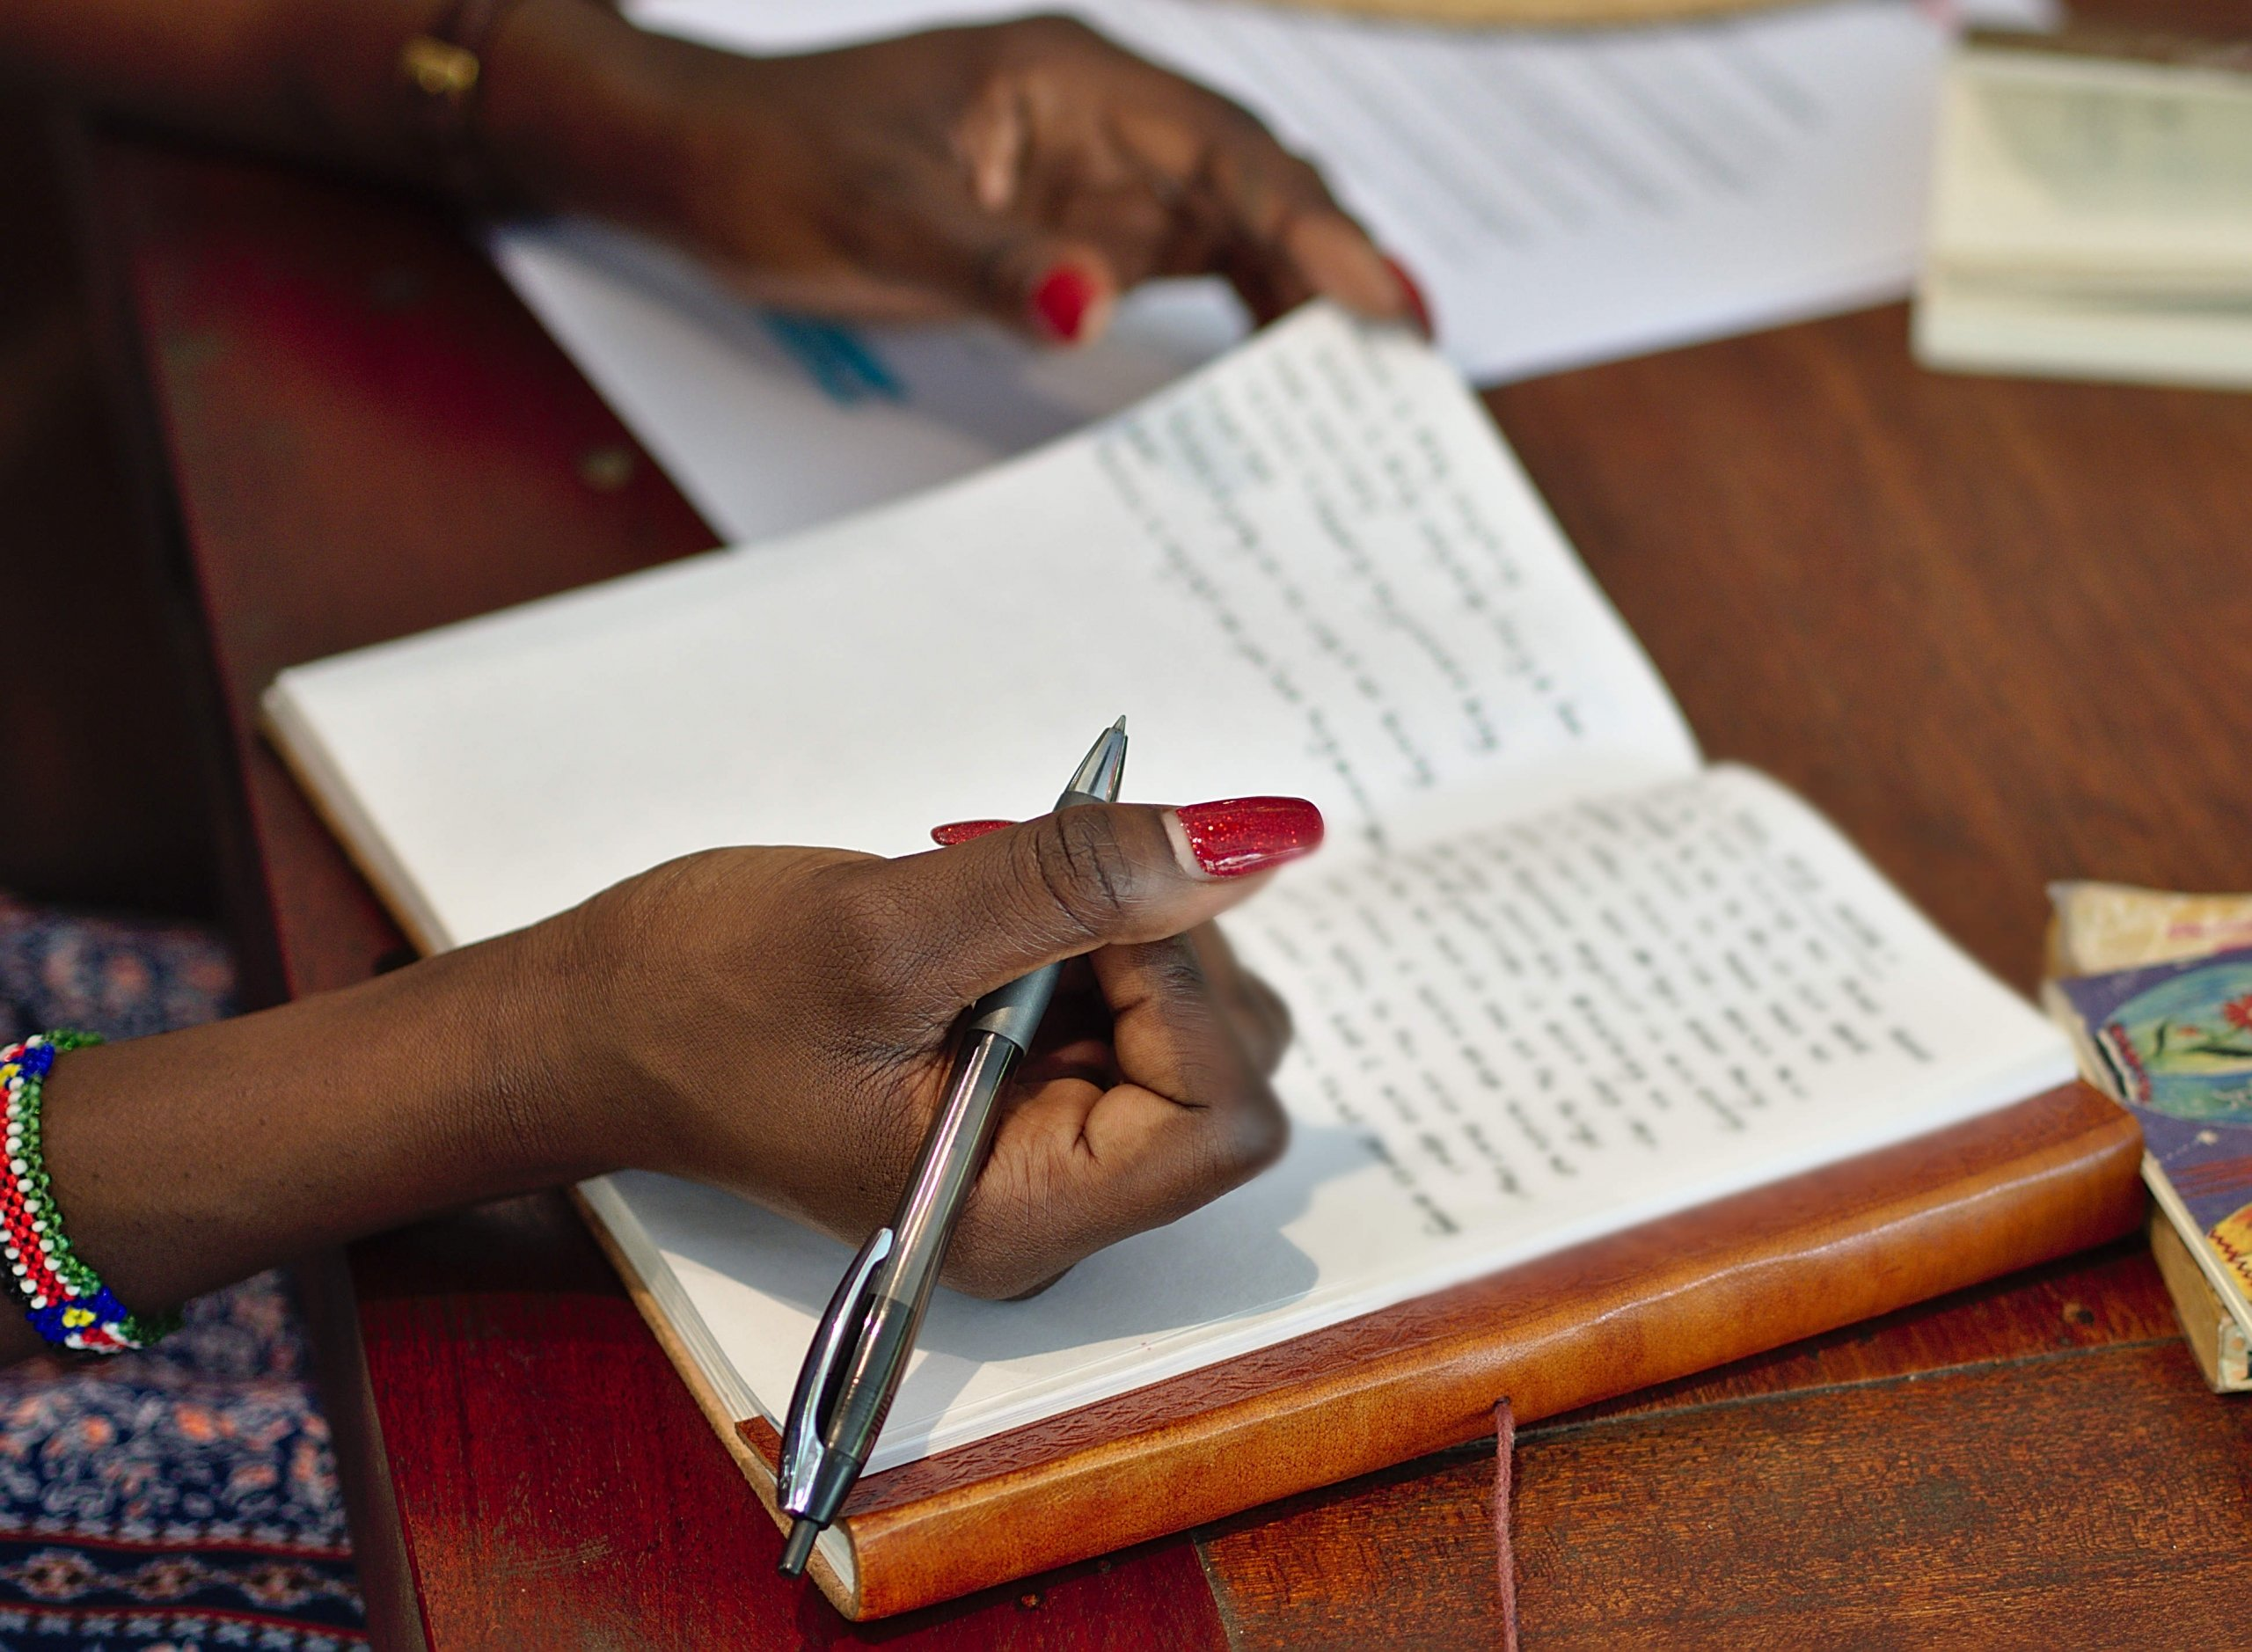 Writing and Yoga Retreat Vietnam - Flora scribbling away in her beautiful leather bound journal